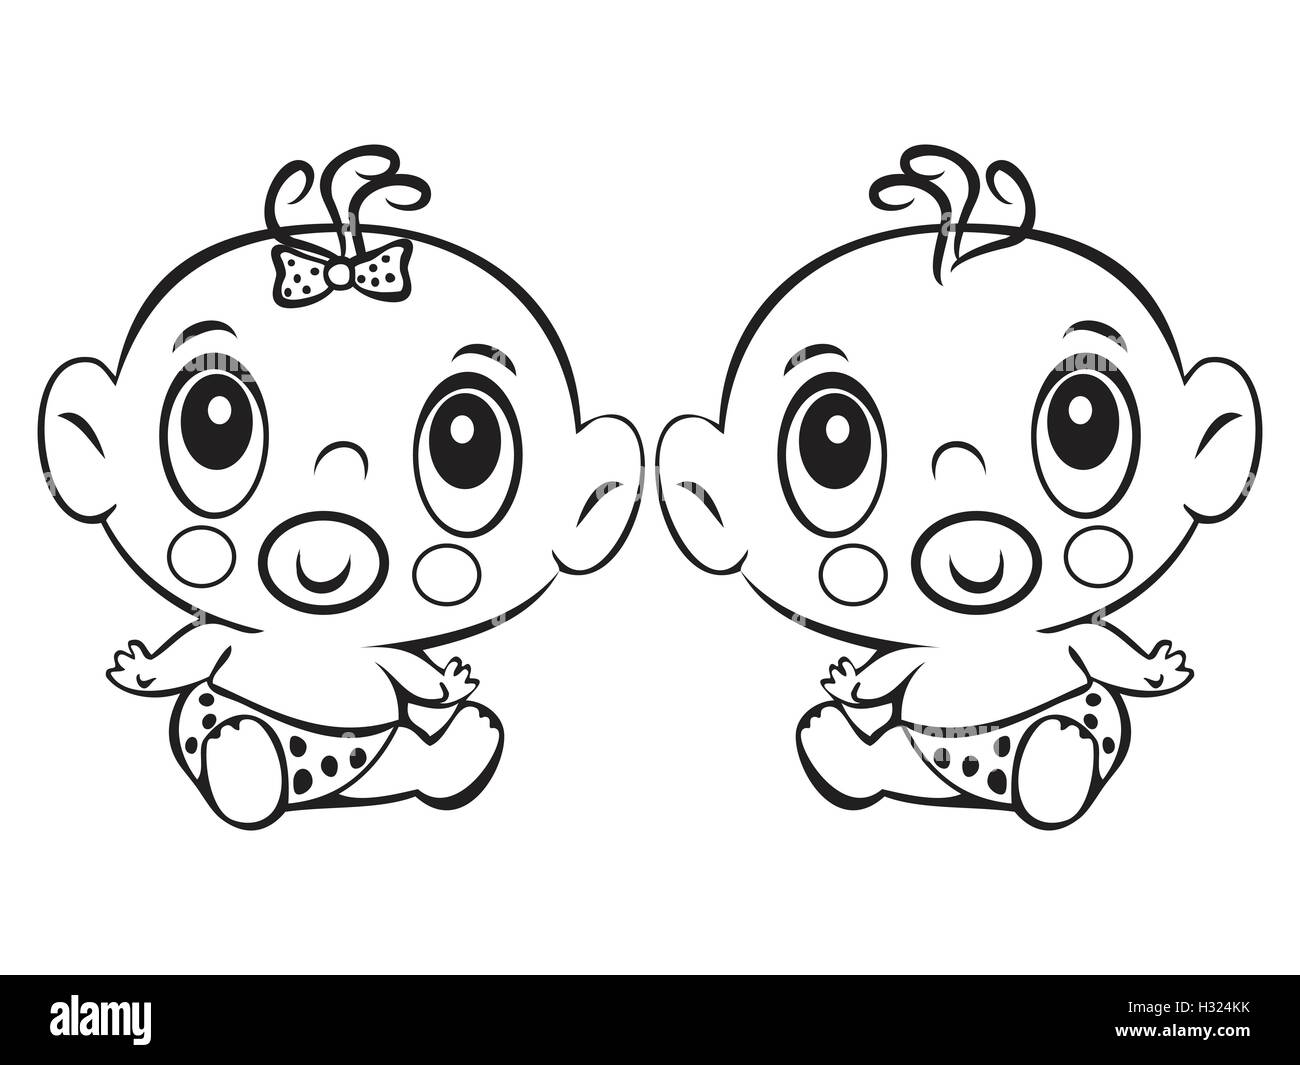 Two Funny baby sitting. Cute baby boy and girl sitting in a diaper isolated for coloring book. Design for children's - Stock Vector